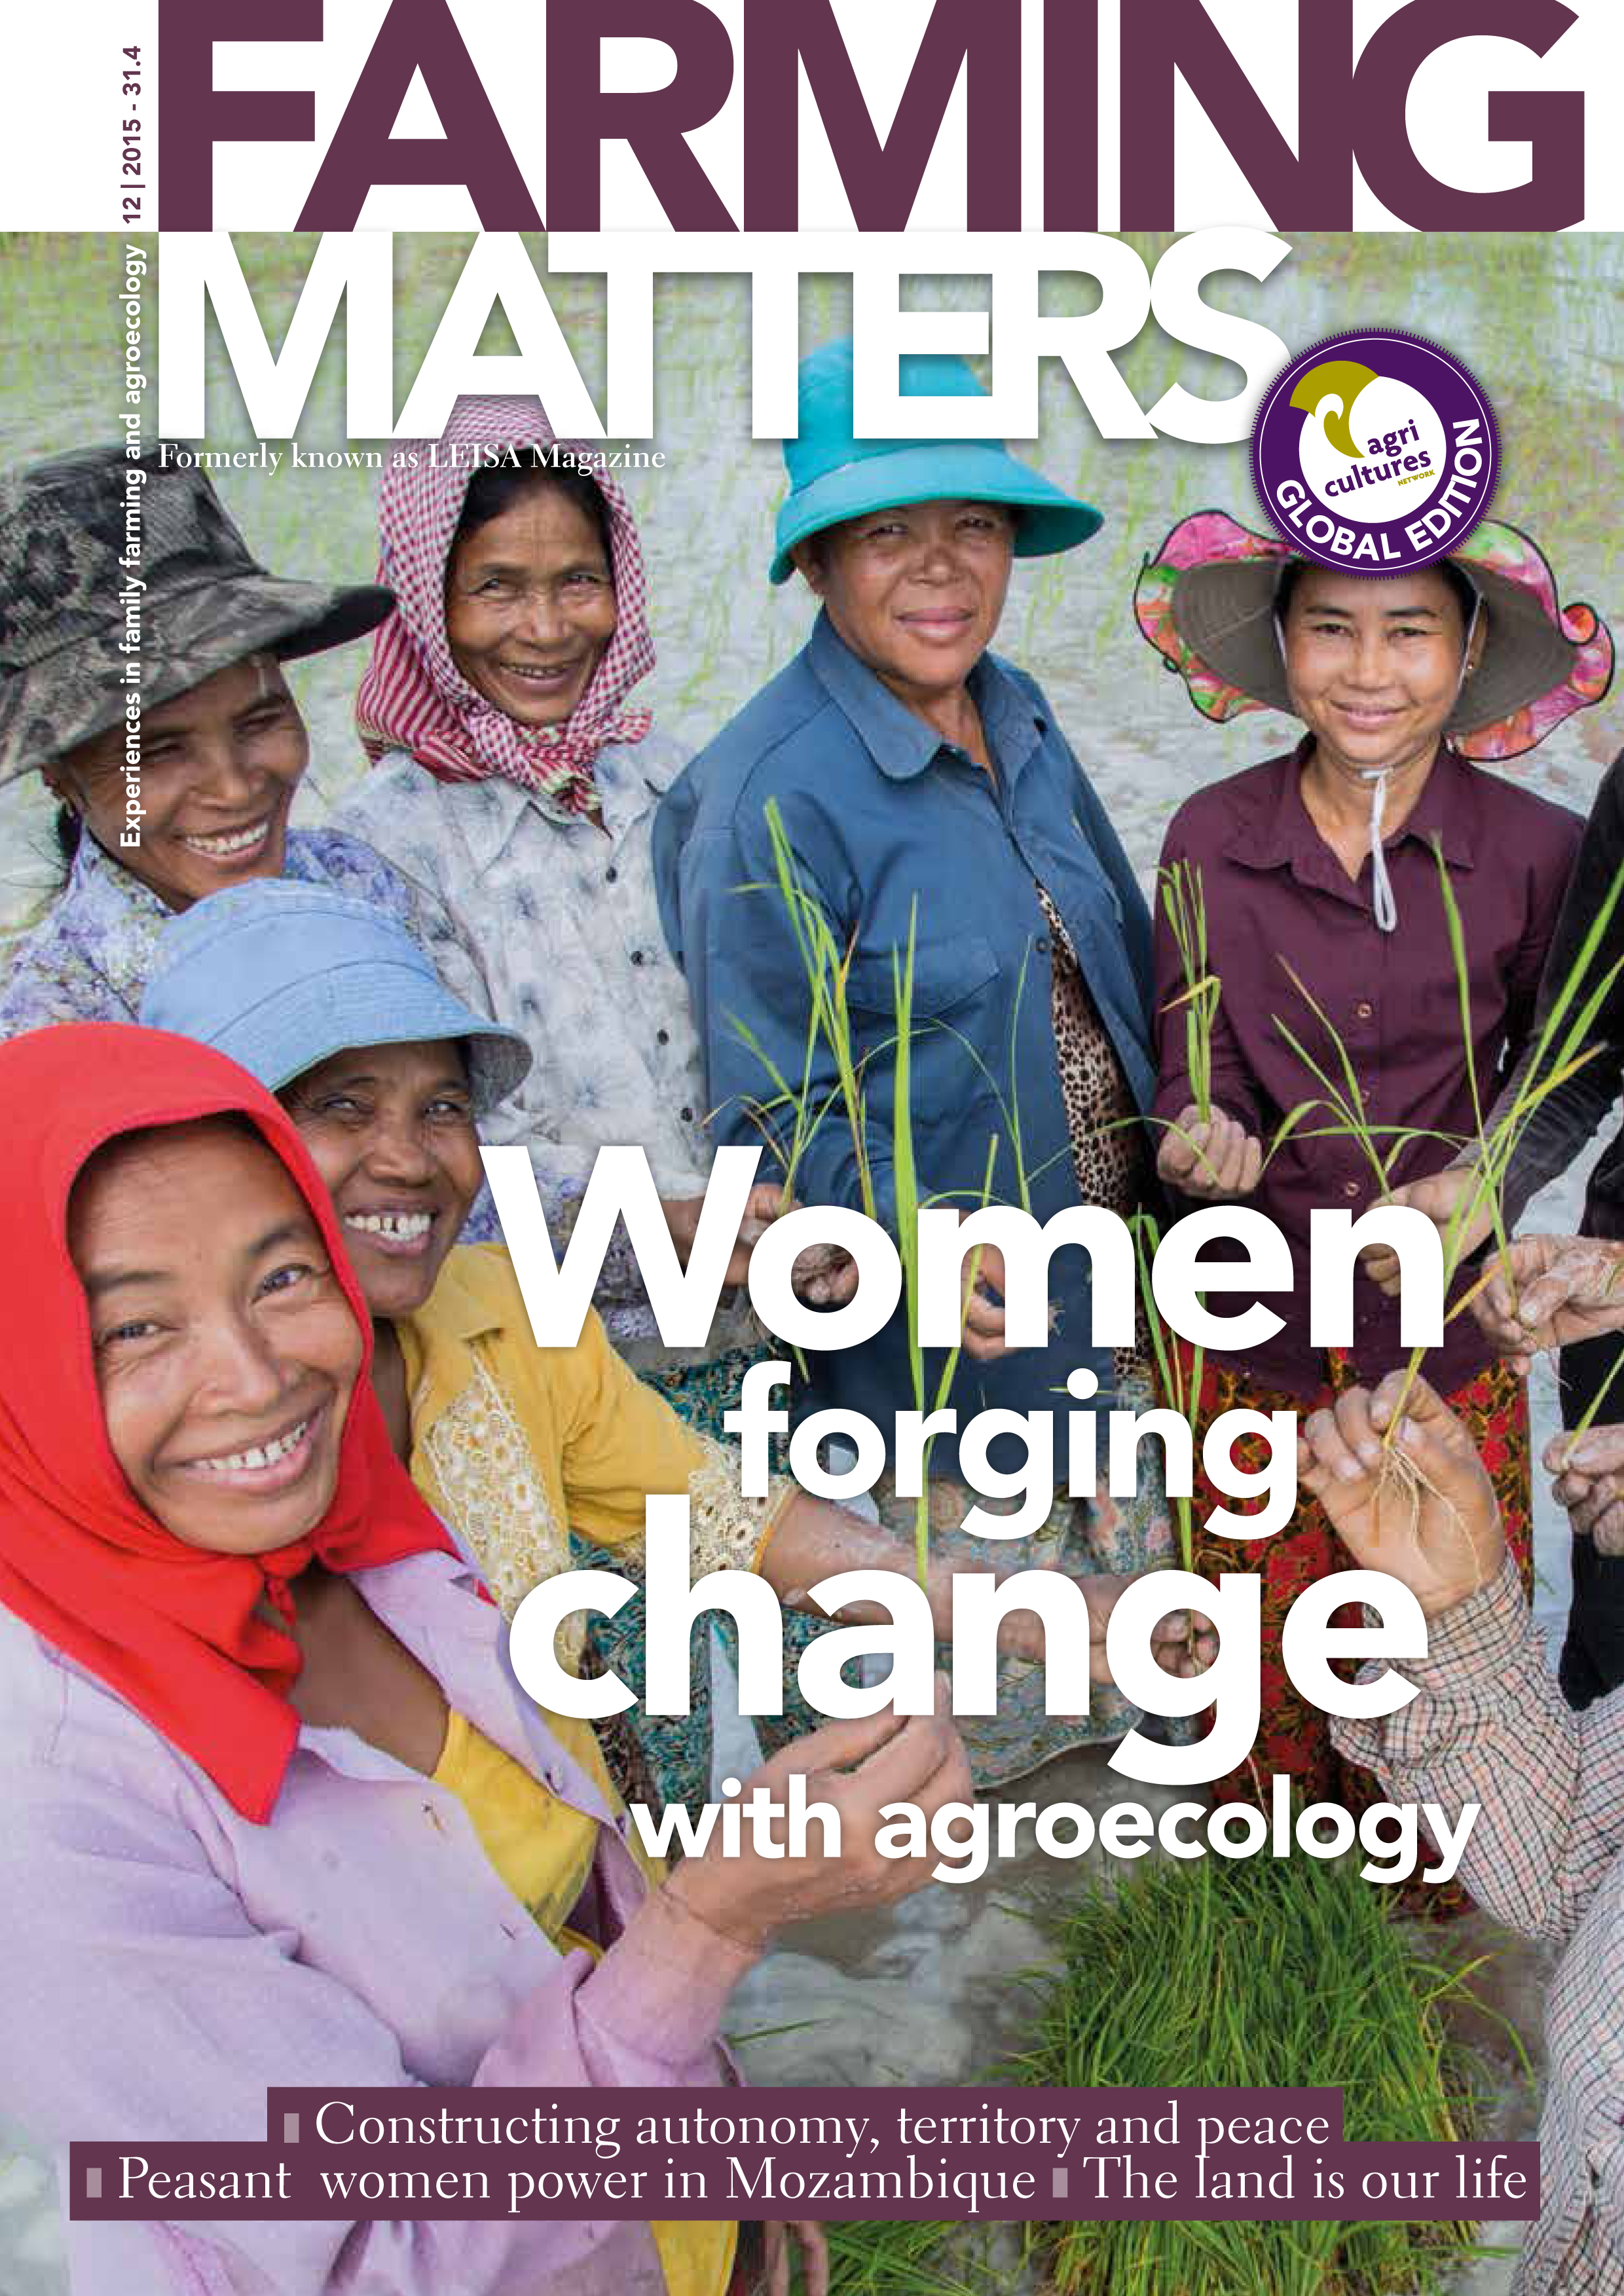 WOMEN FORGING CHANGE WITH AGROECOLOGY